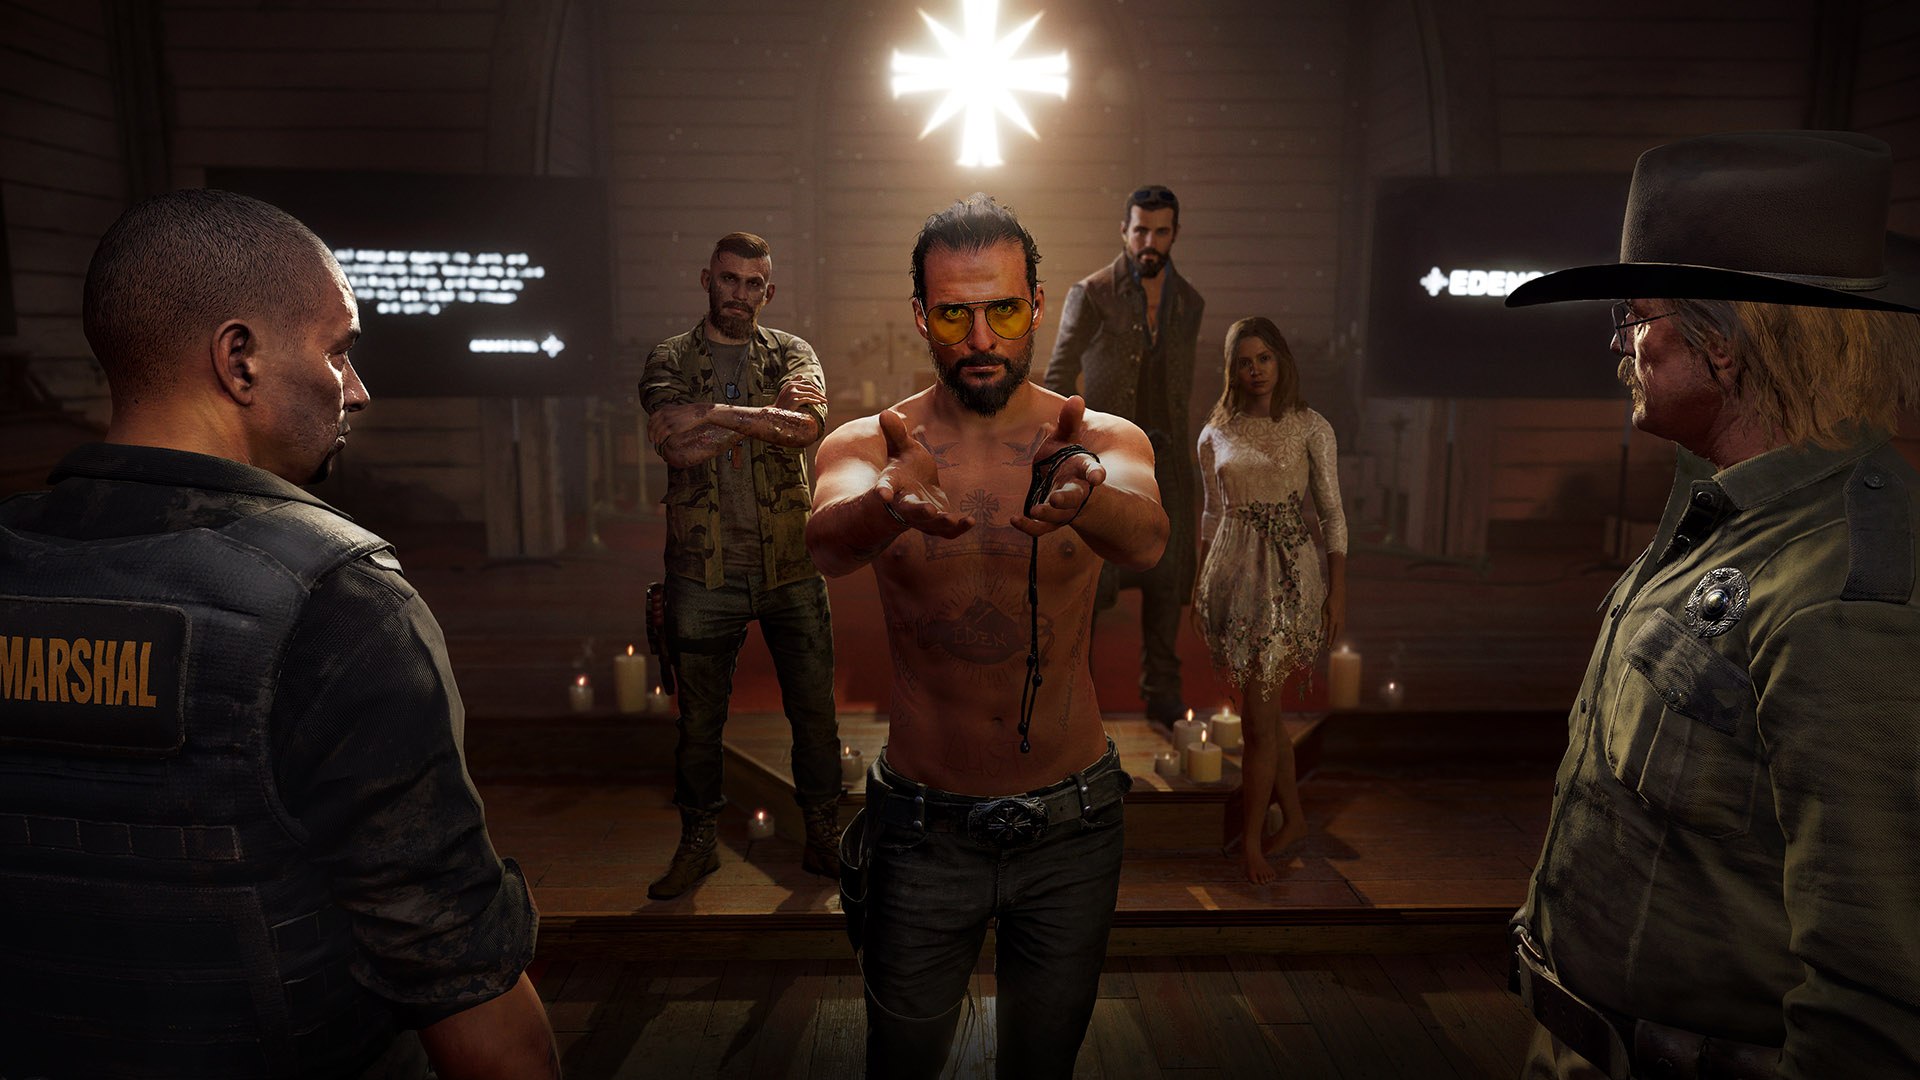 Far Cry 5 Update 1.03 Live Now, Fixes Arcade Issue